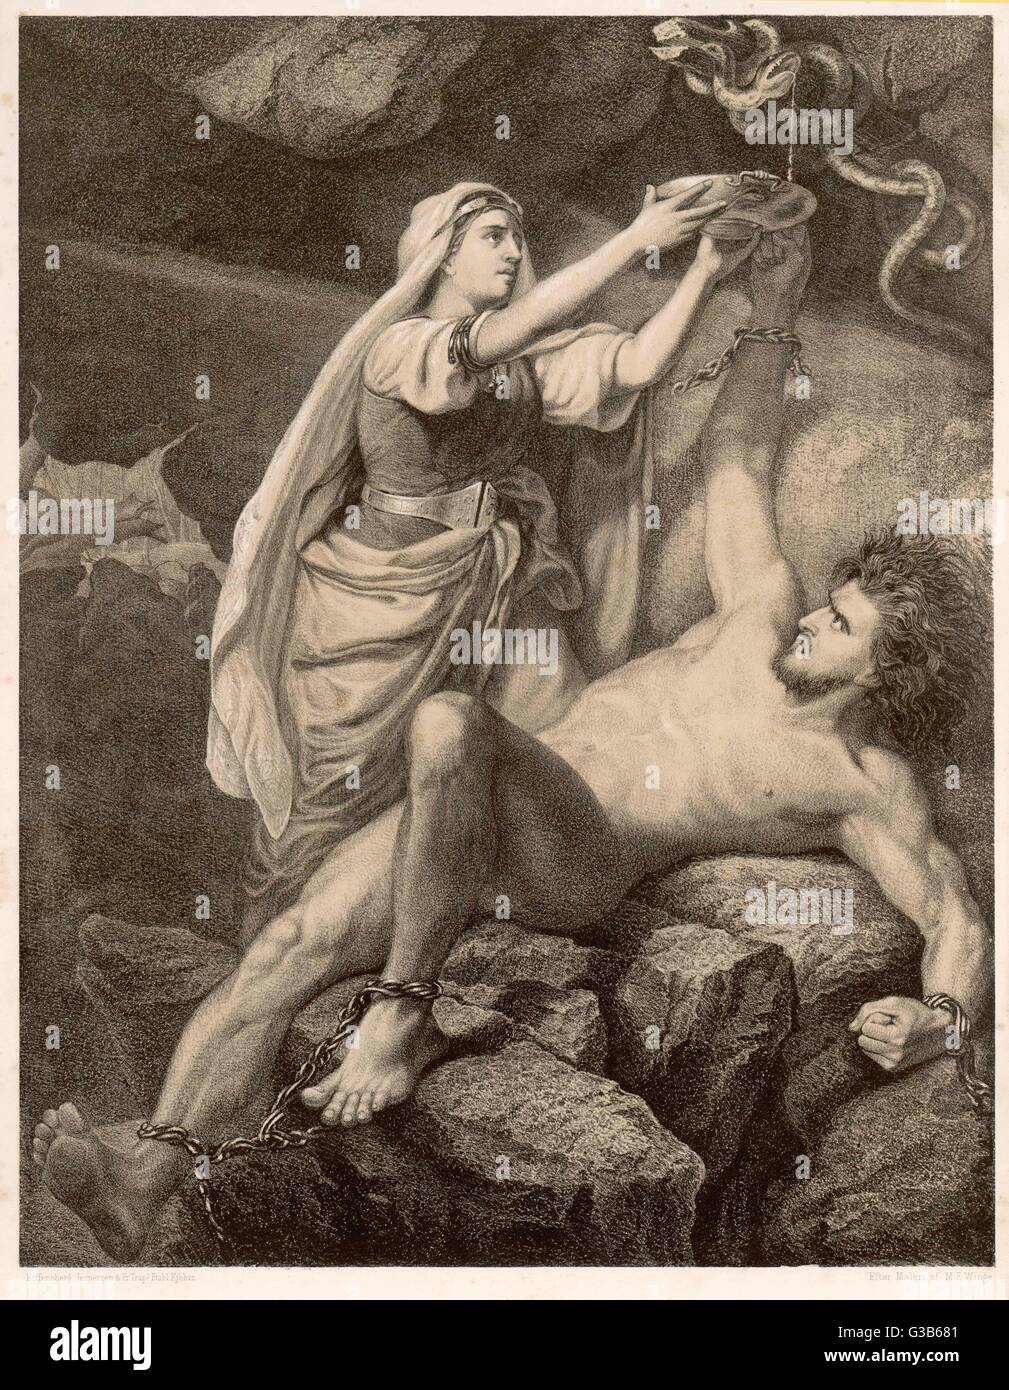 To Punish Loki the Aesir (the  gods) chained him beneath a  snake so that its venom would  drip onto him. His wife - Stock Image